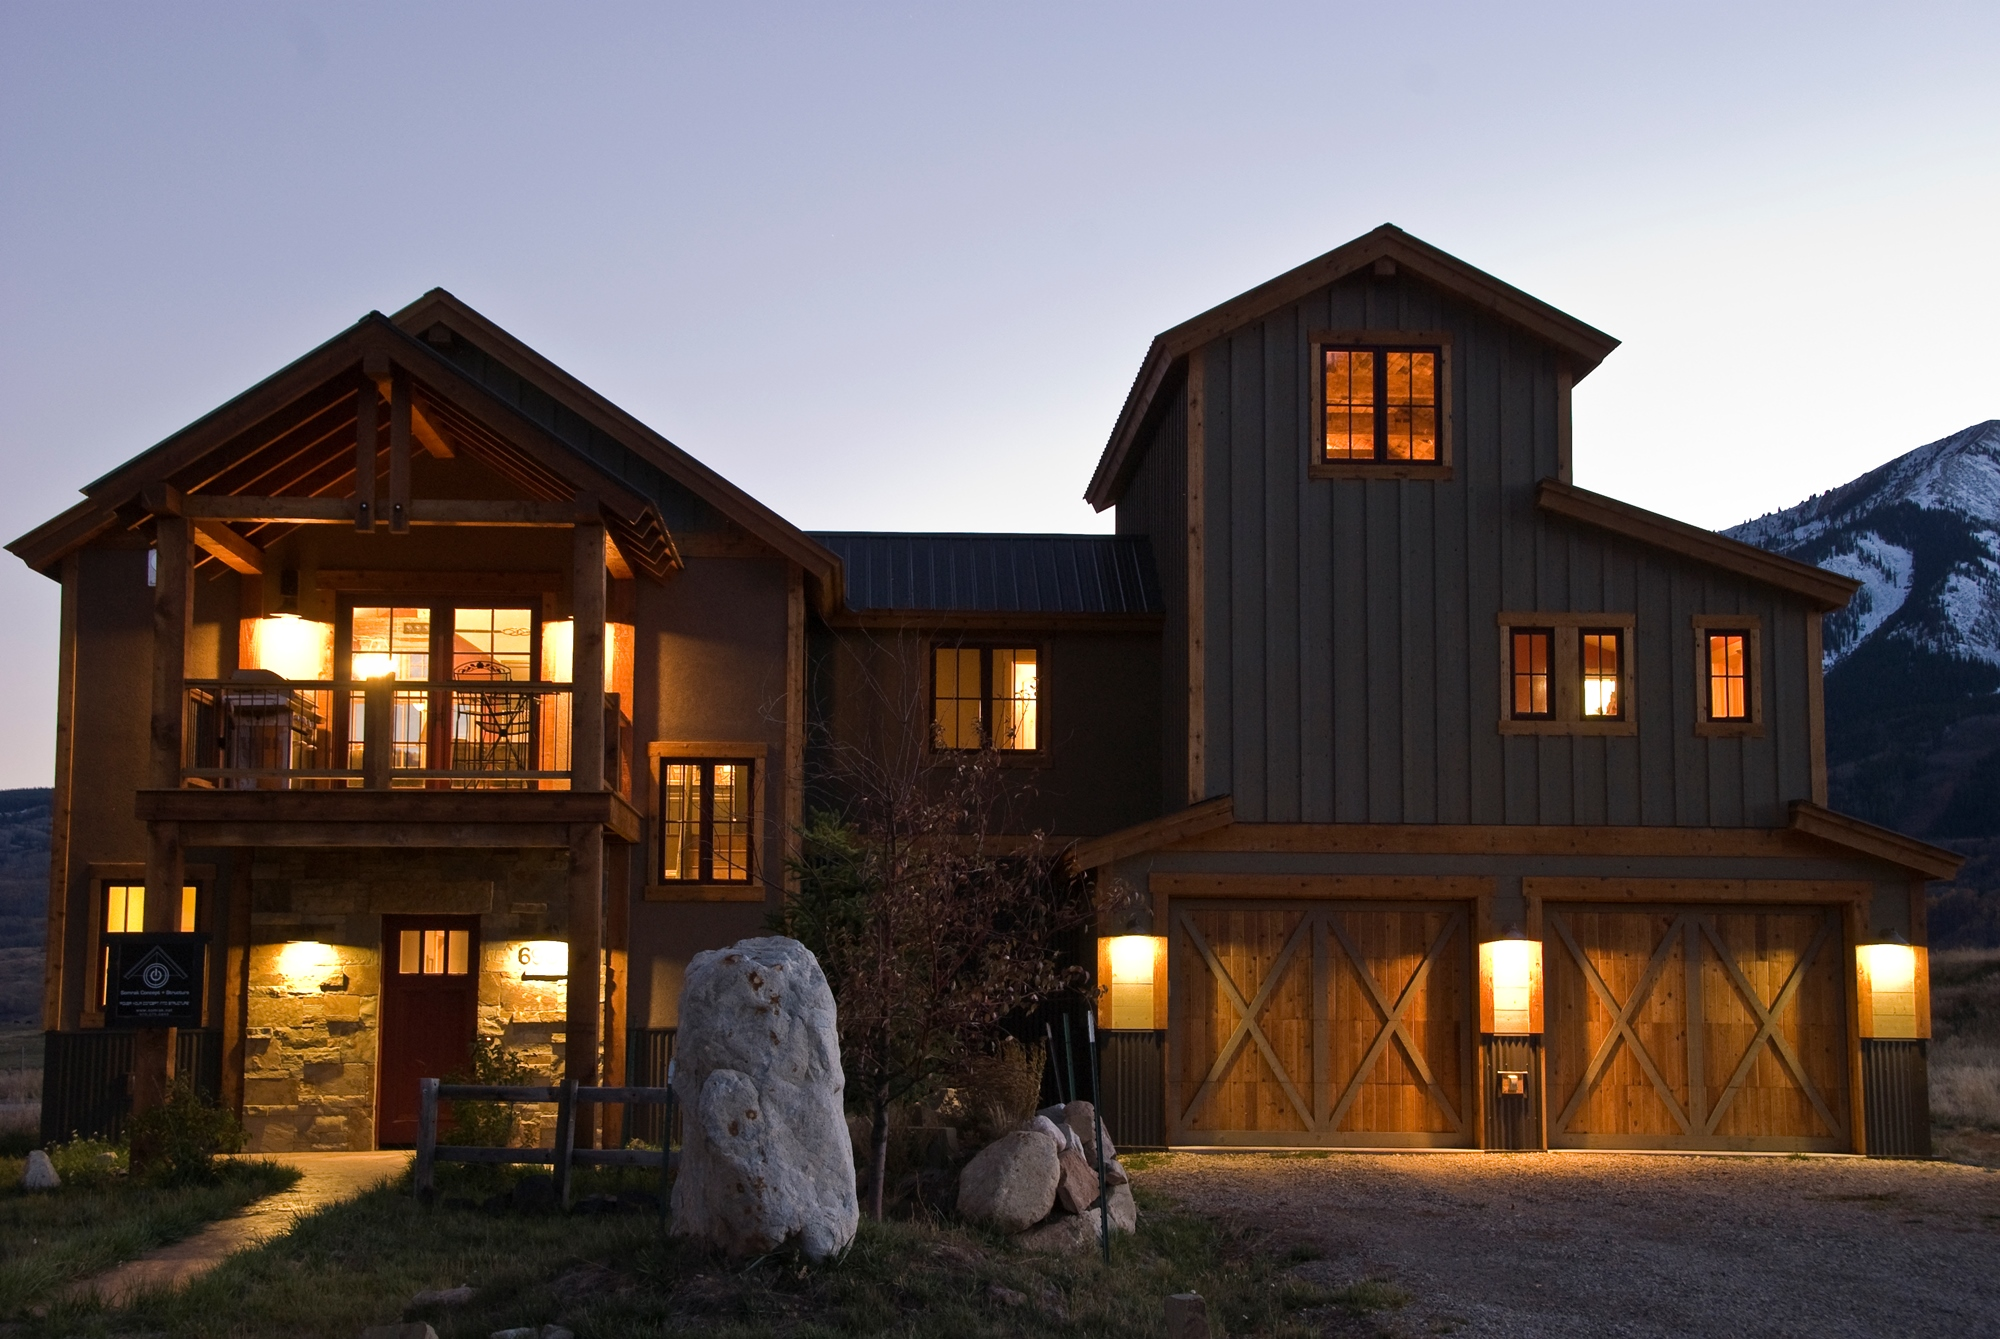 Single Family Home for Sale at Custom Home With Stunning Panoramic Views 696 S Avion Drive Crested Butte, Colorado 81224 United States